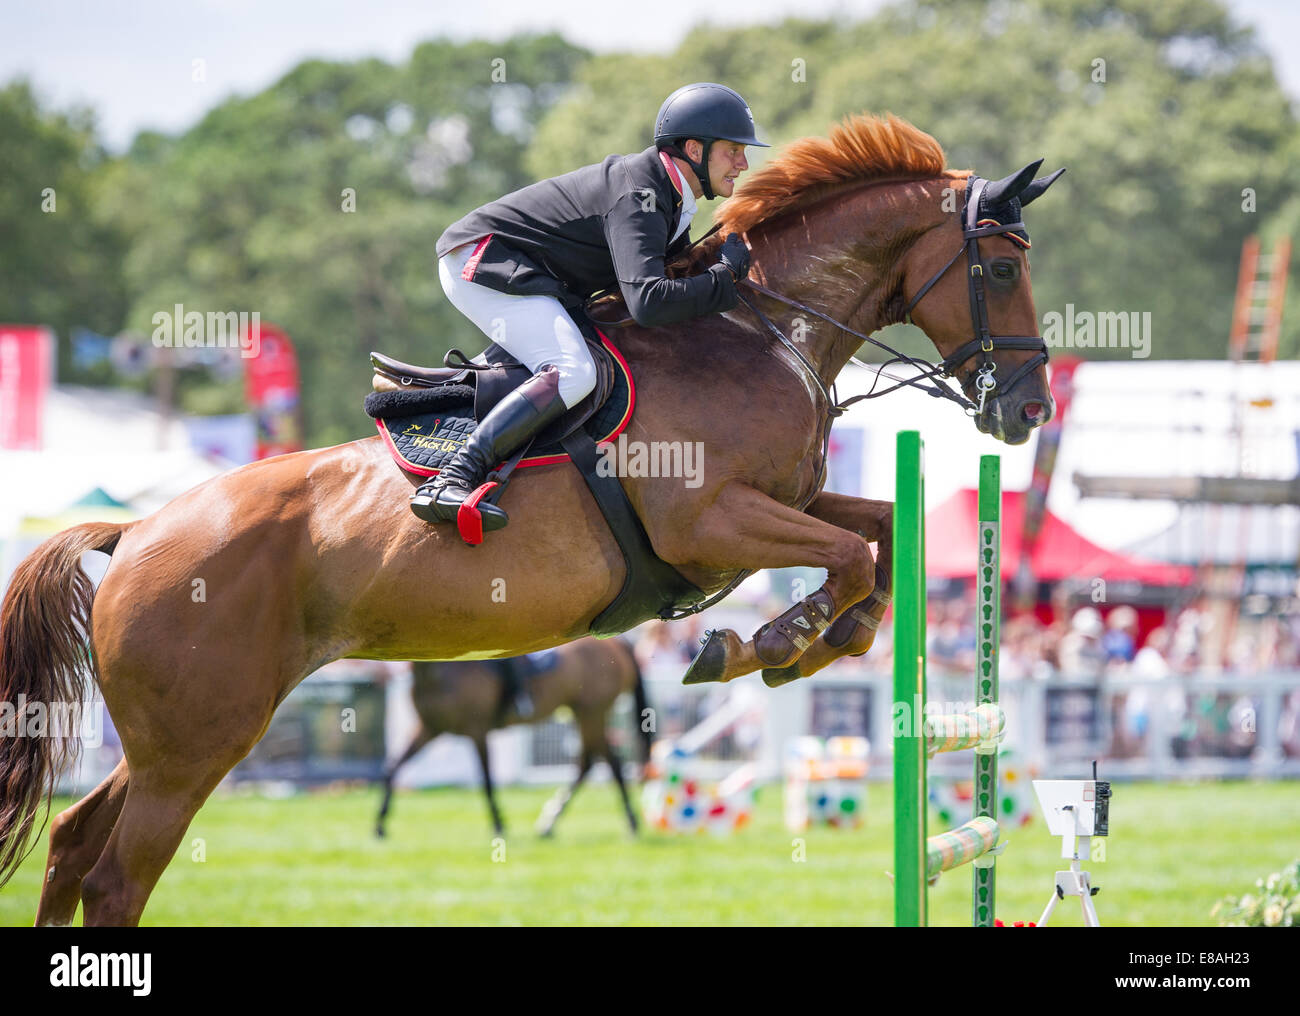 Horse show jumping at the new forest show Hampshire england - Stock Image